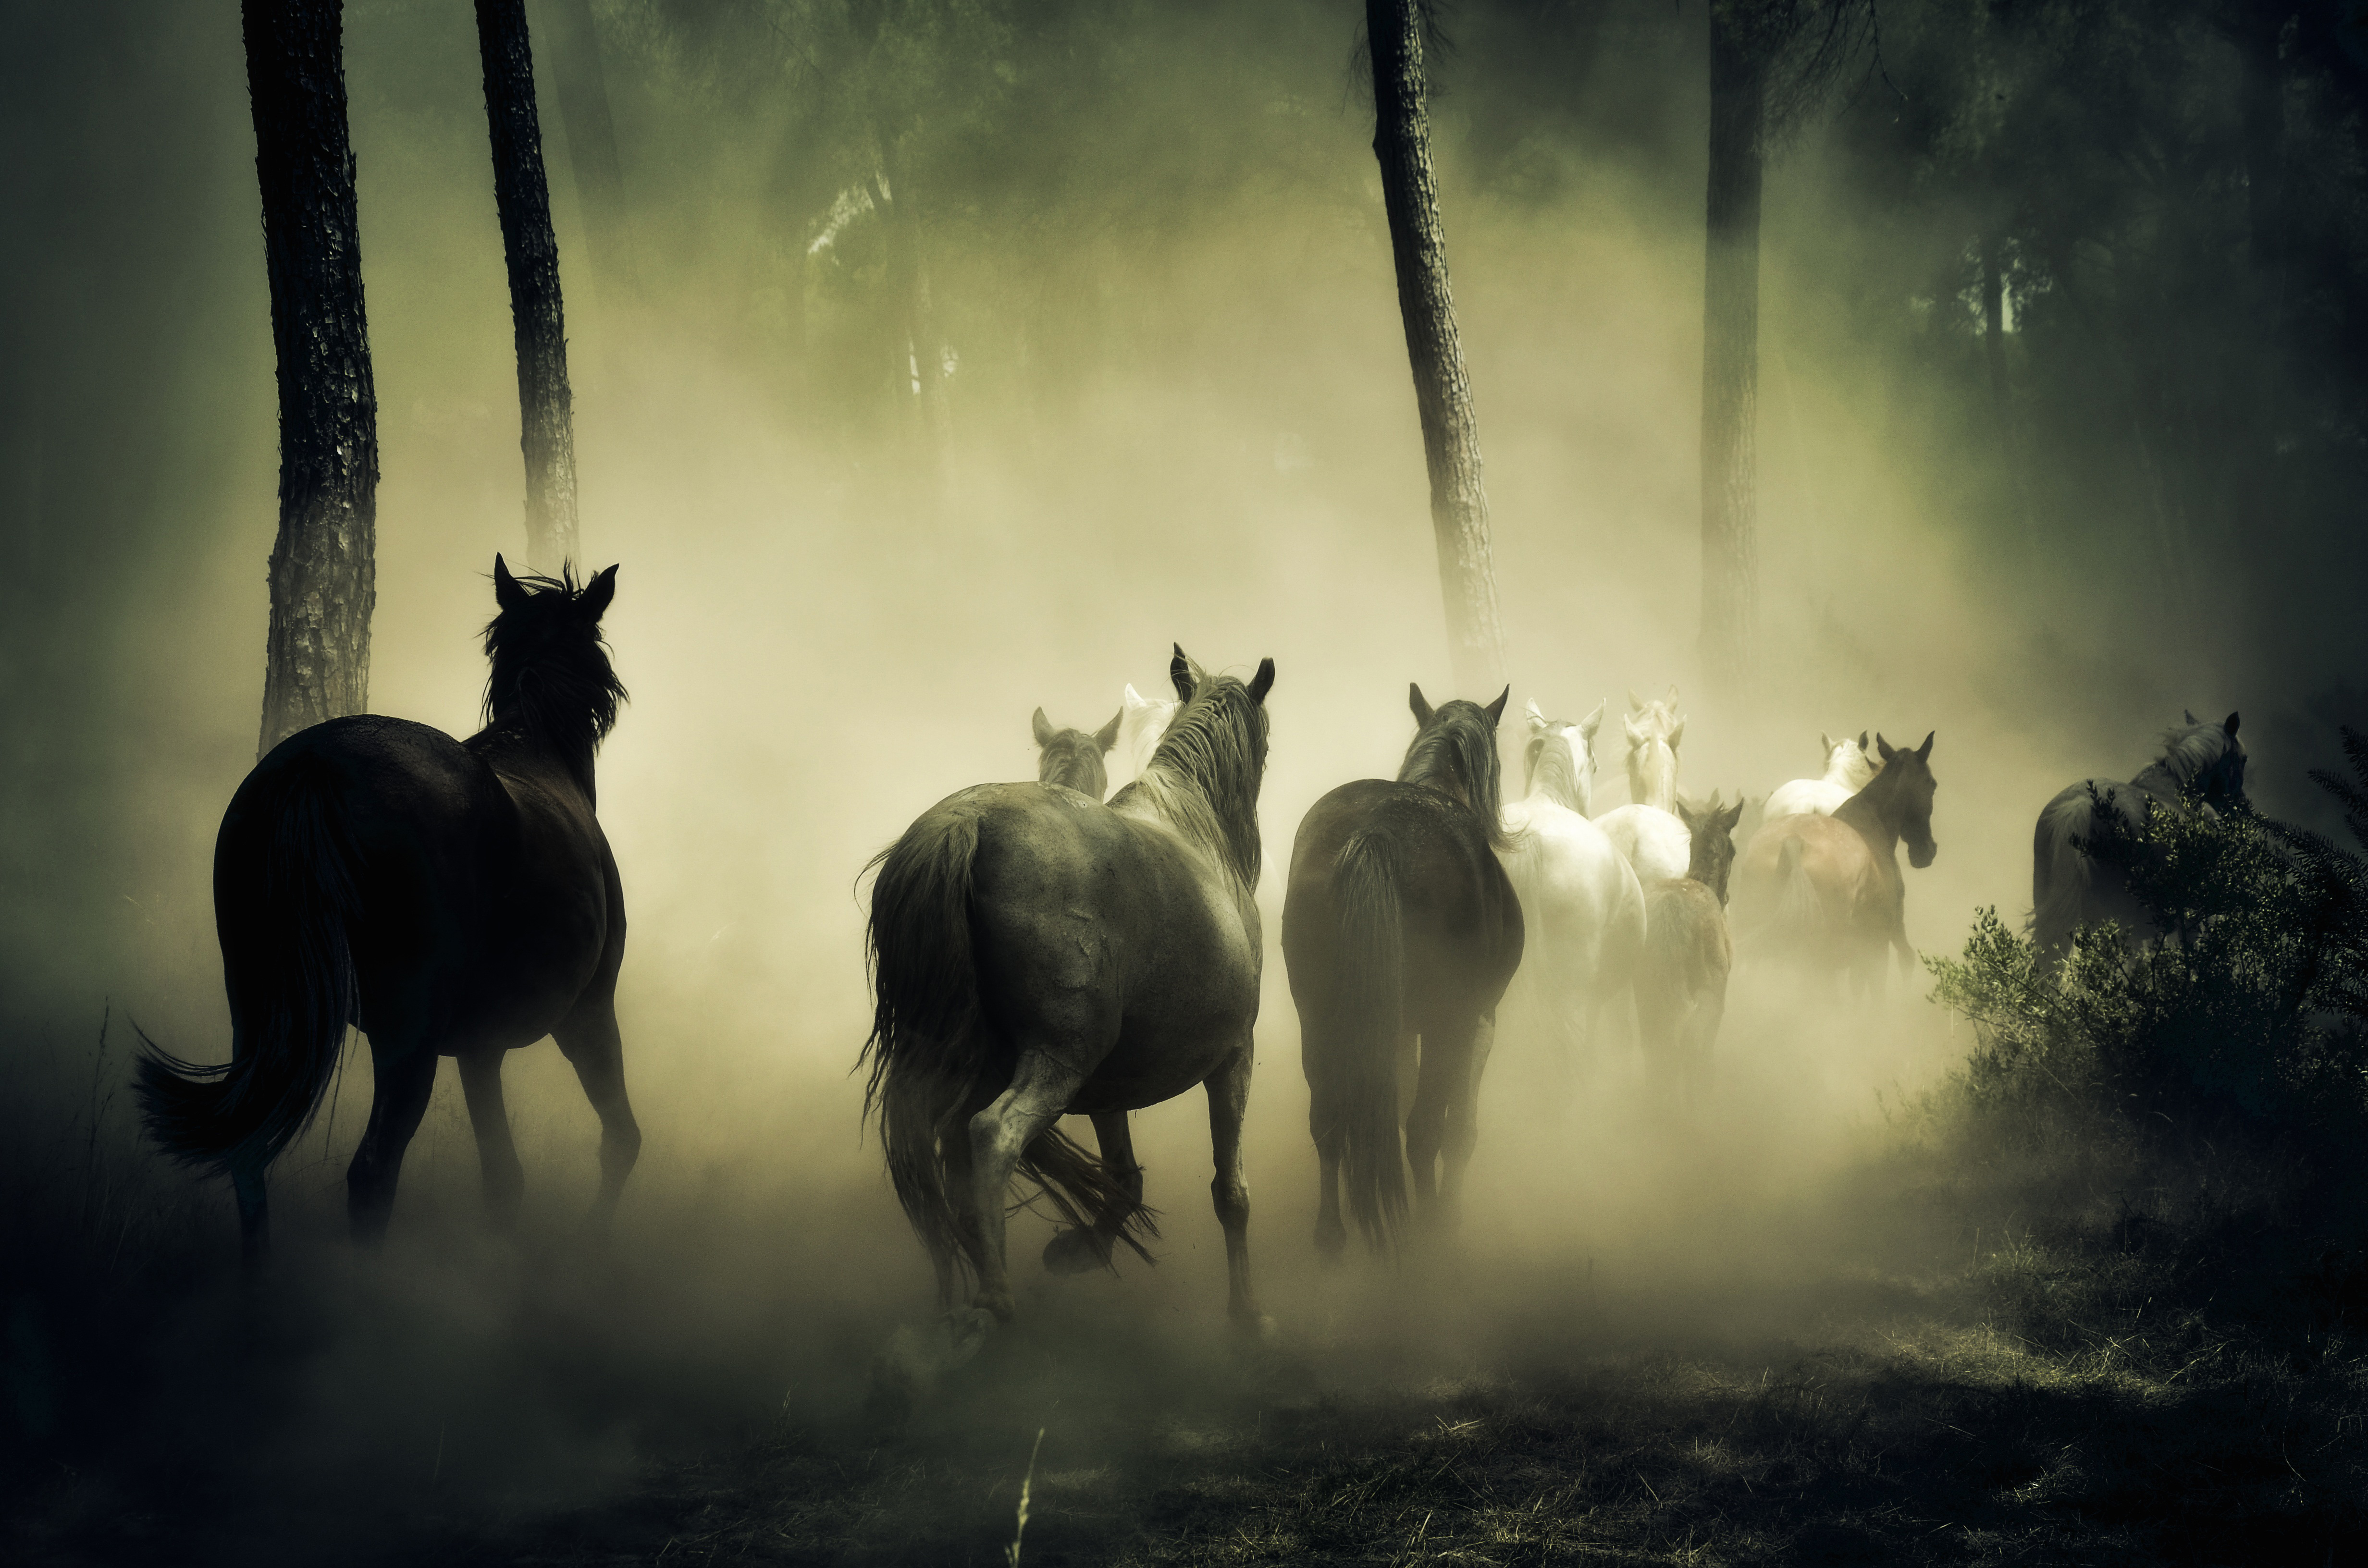 flock, horses, nature, run